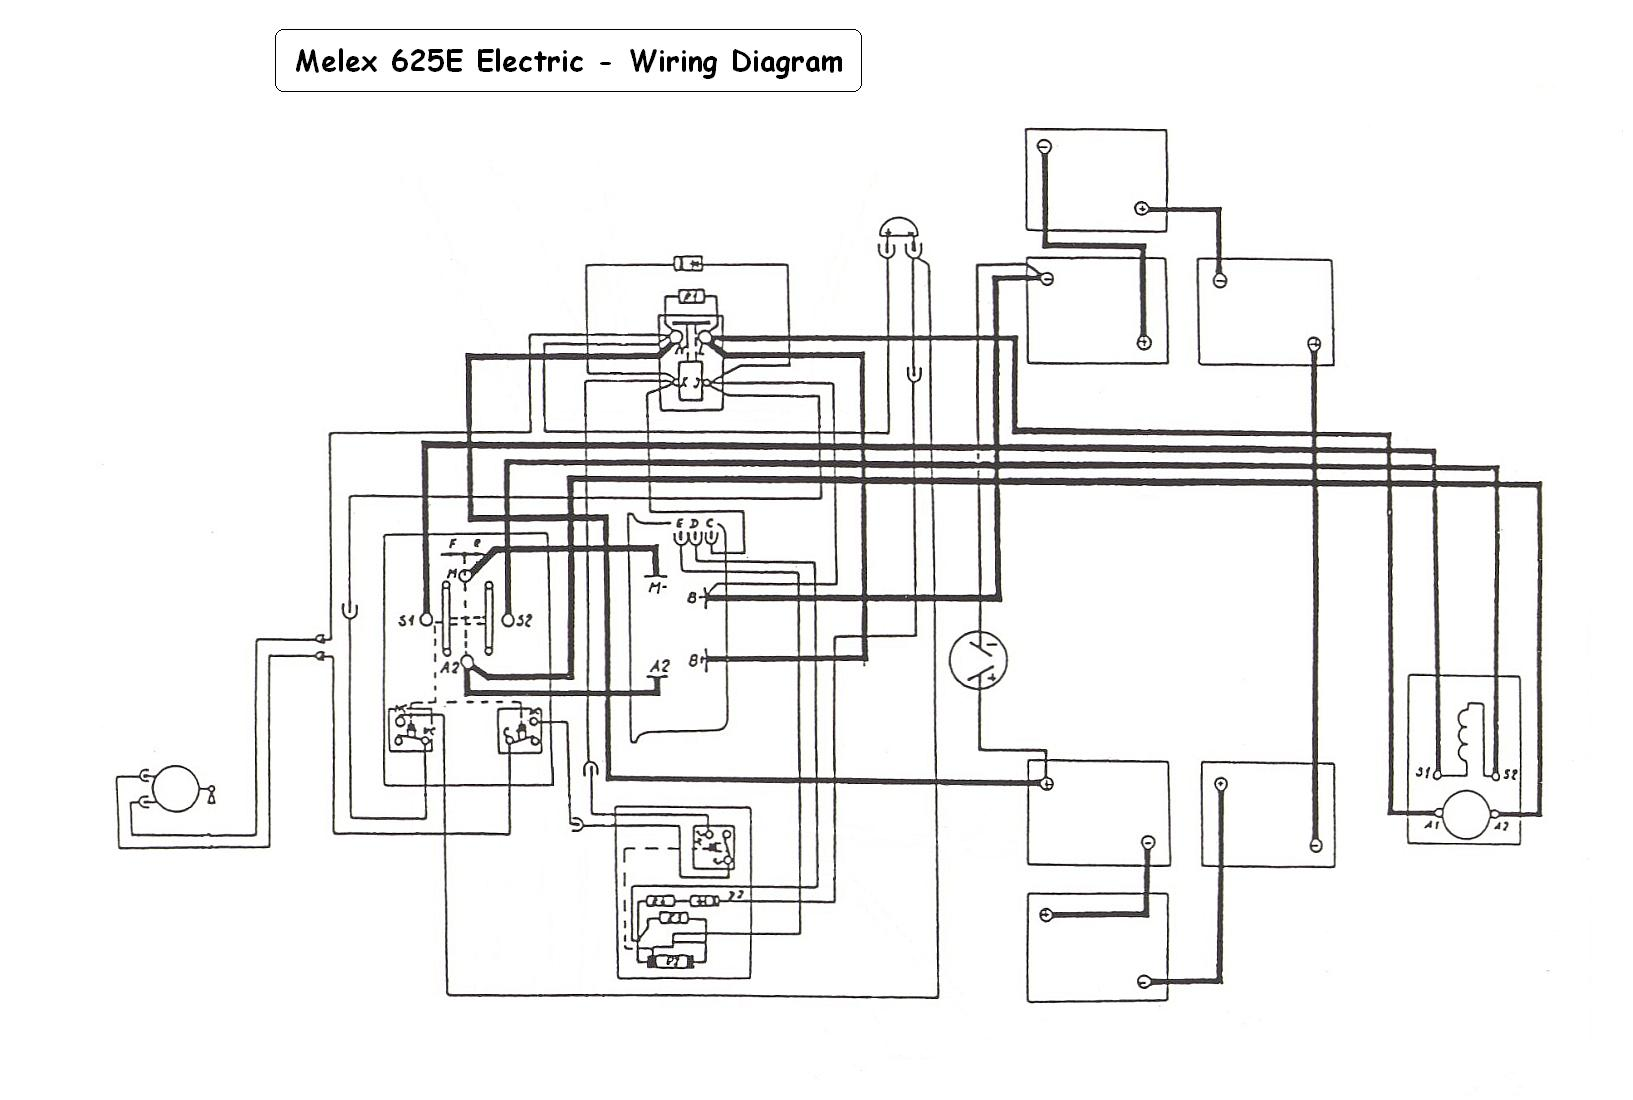 club car headlight wiring diagram with Vintage Golf Cart Wiring Diagram Club Car on WiringDiagrams additionally 1998 1999ClubCarGasElectric as well High Beam Not Working Honda Accord 2001 A 1336701 moreover Index2 also 3023933587.